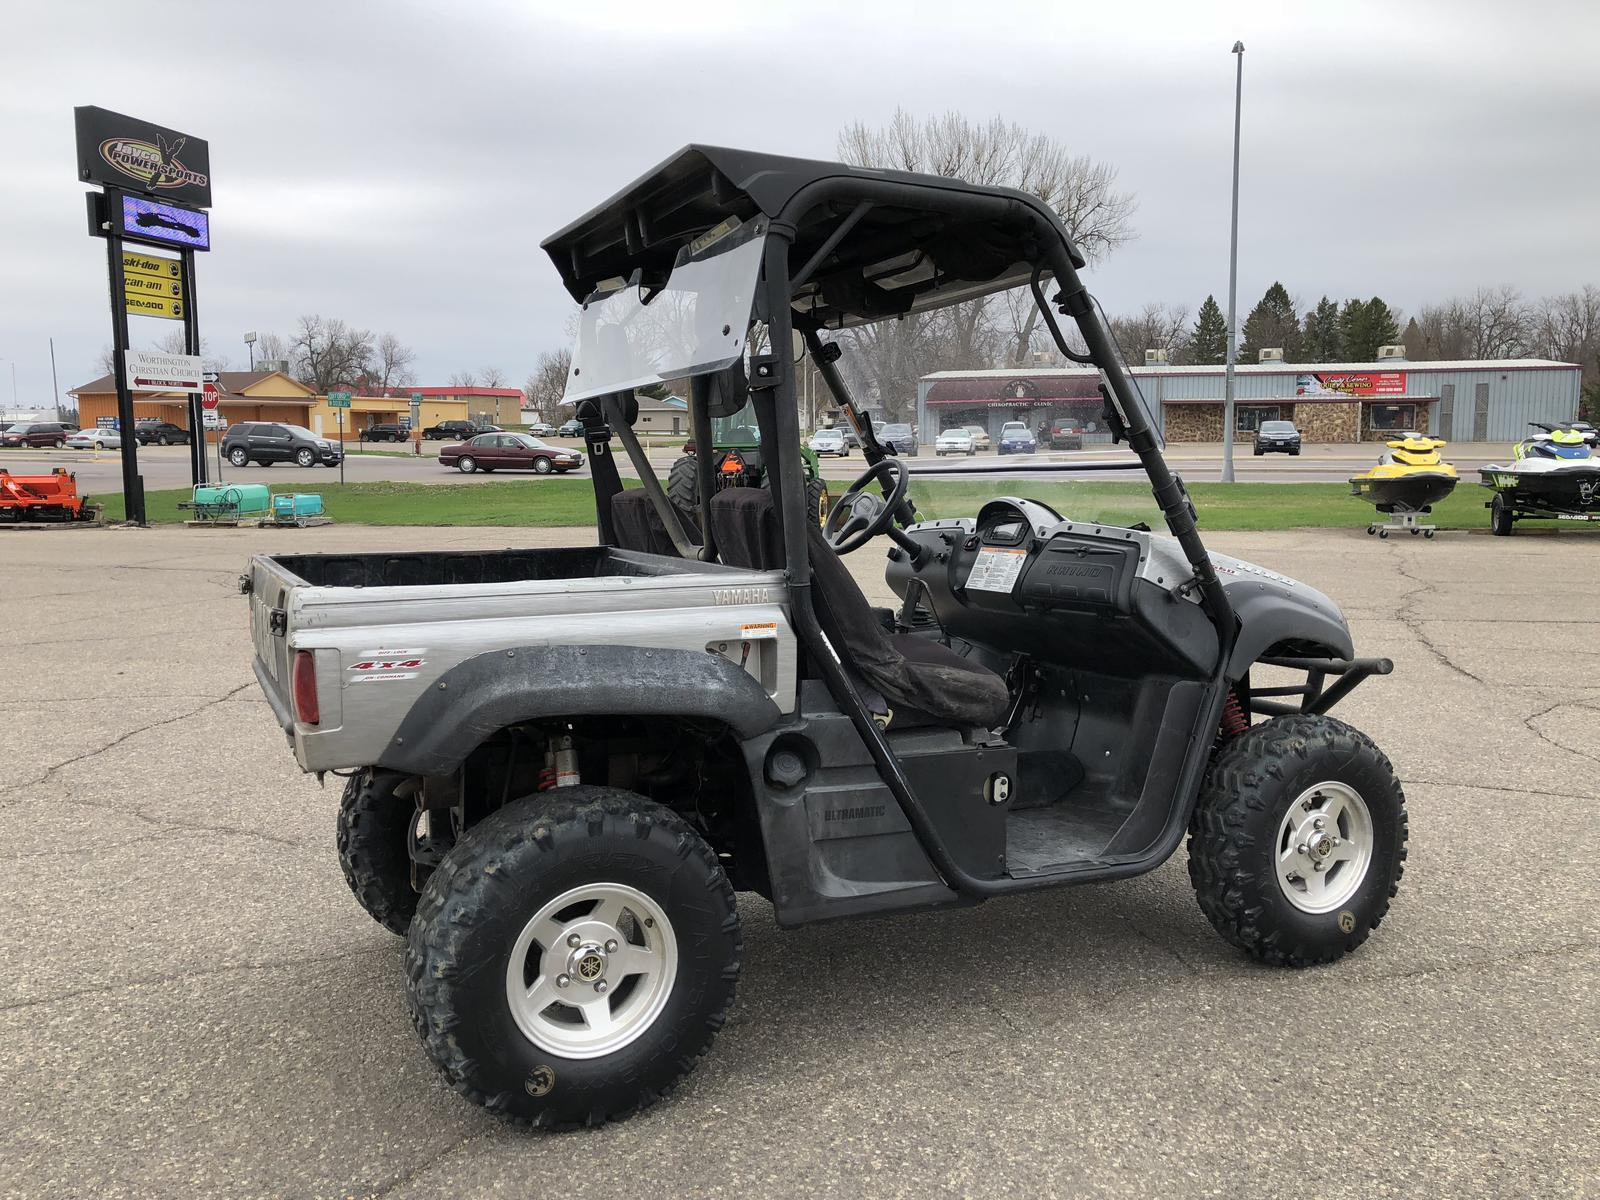 2007 Yamaha Rhino Se 660 For Sale In Worthington Mn Jaycox Powersports Fuel Filter Img 0857